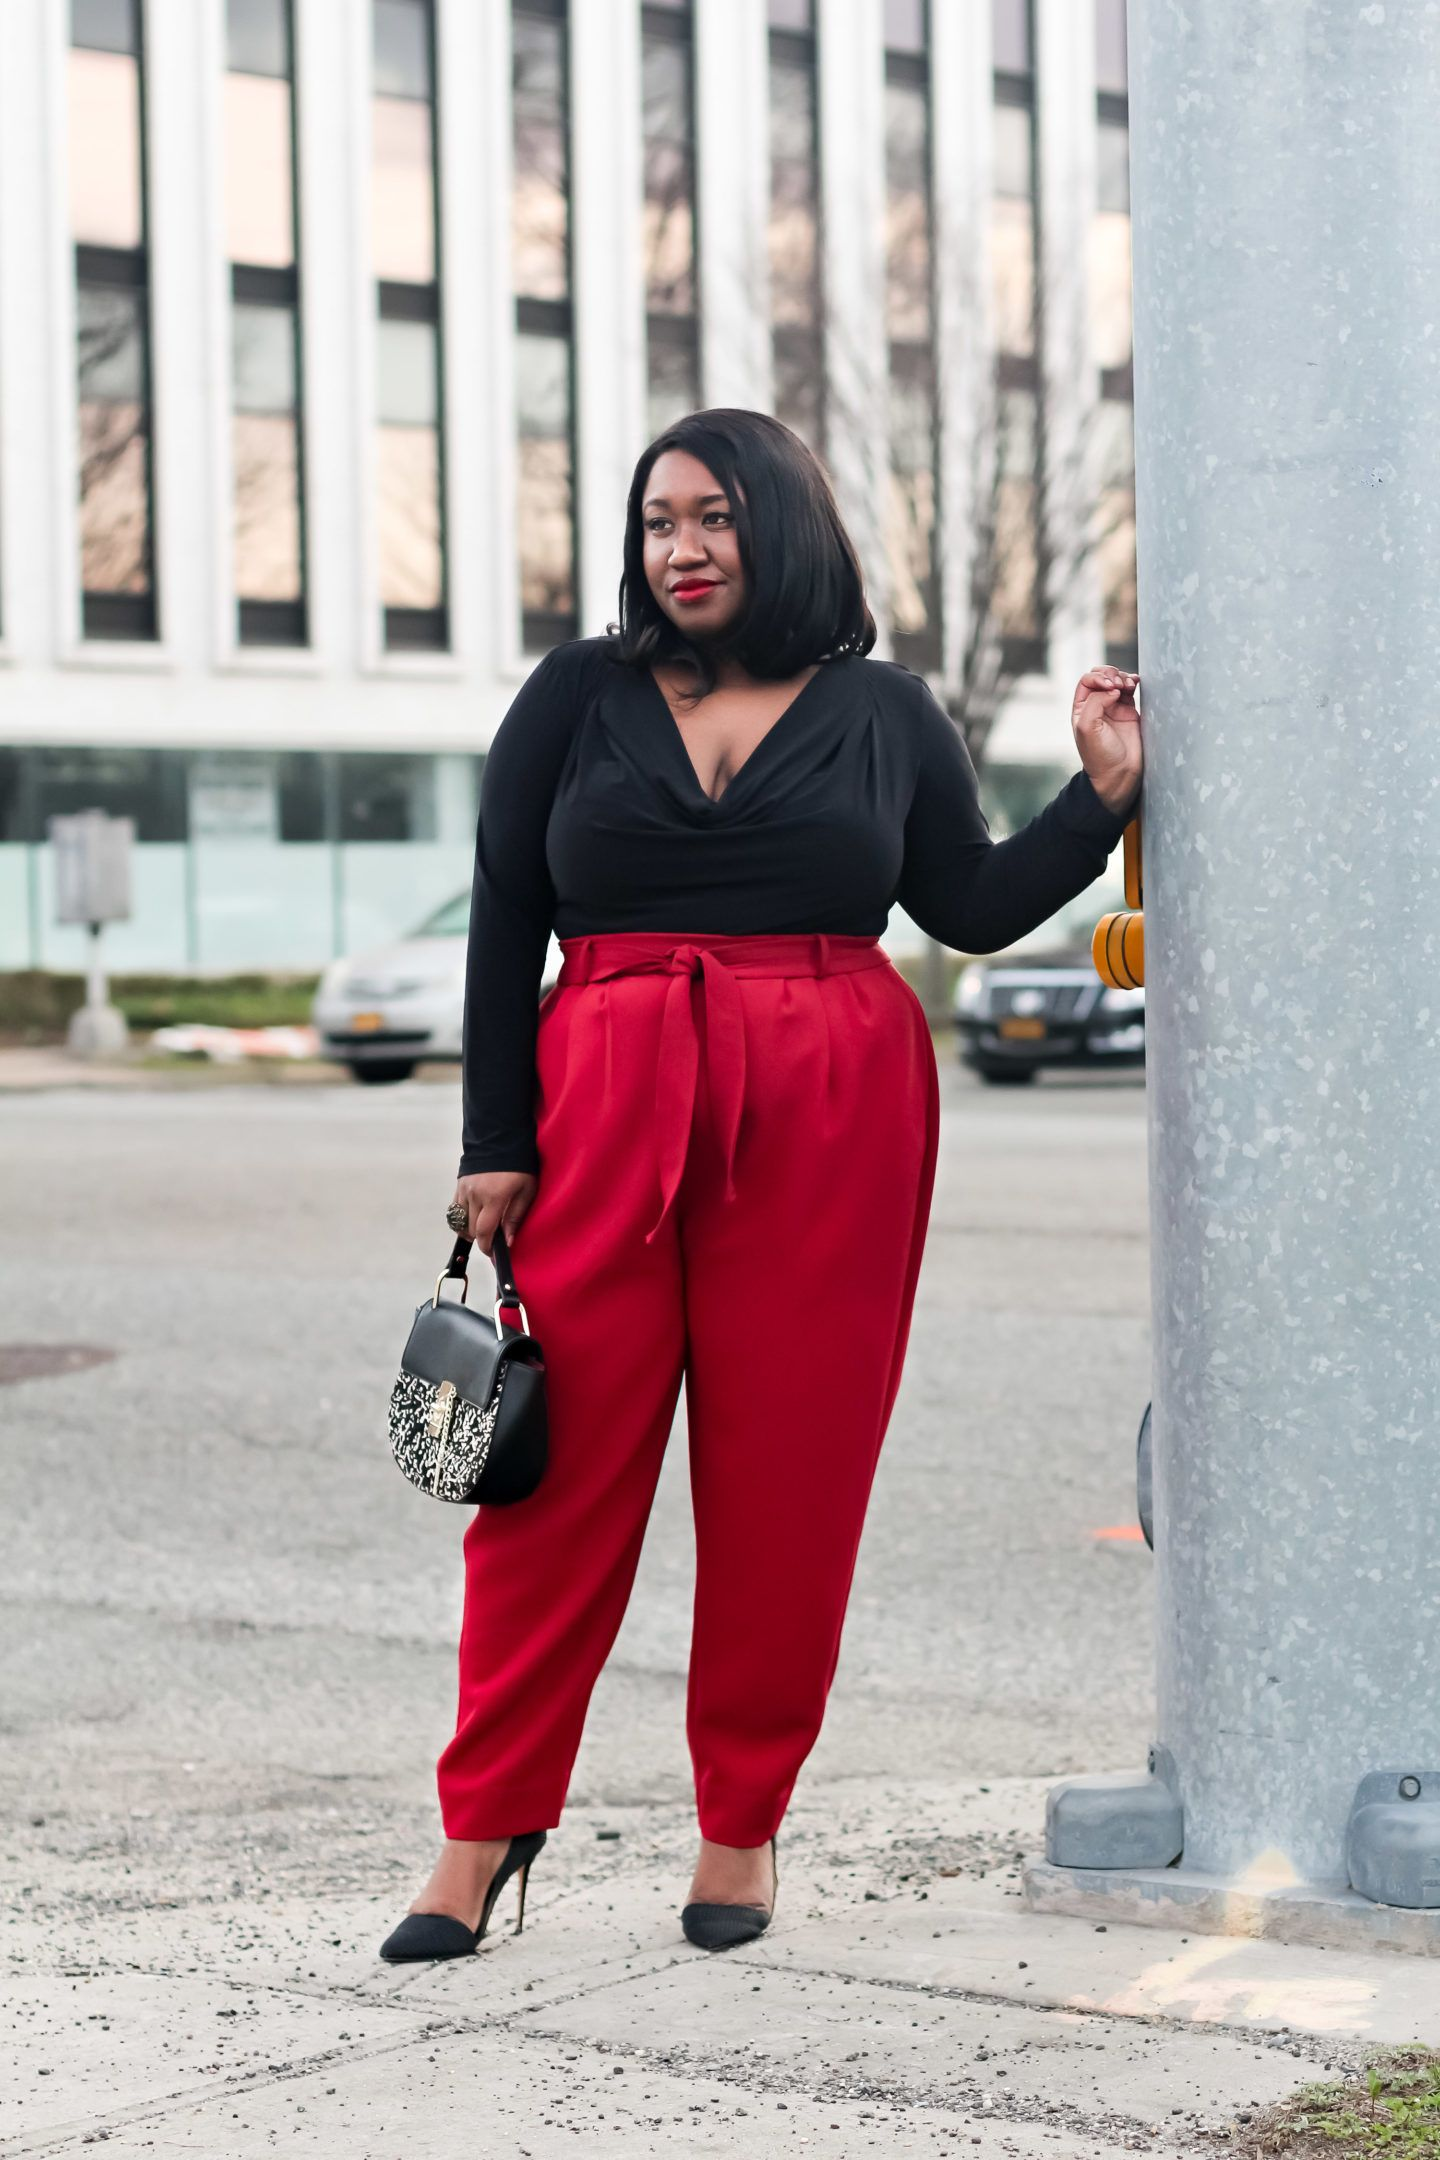 0b53207da60fa Plus Size Fashion • Plus Size Red Pants Outfit • Seeing Red • Shapely Chic  Sheri  plussize  plussizefashion